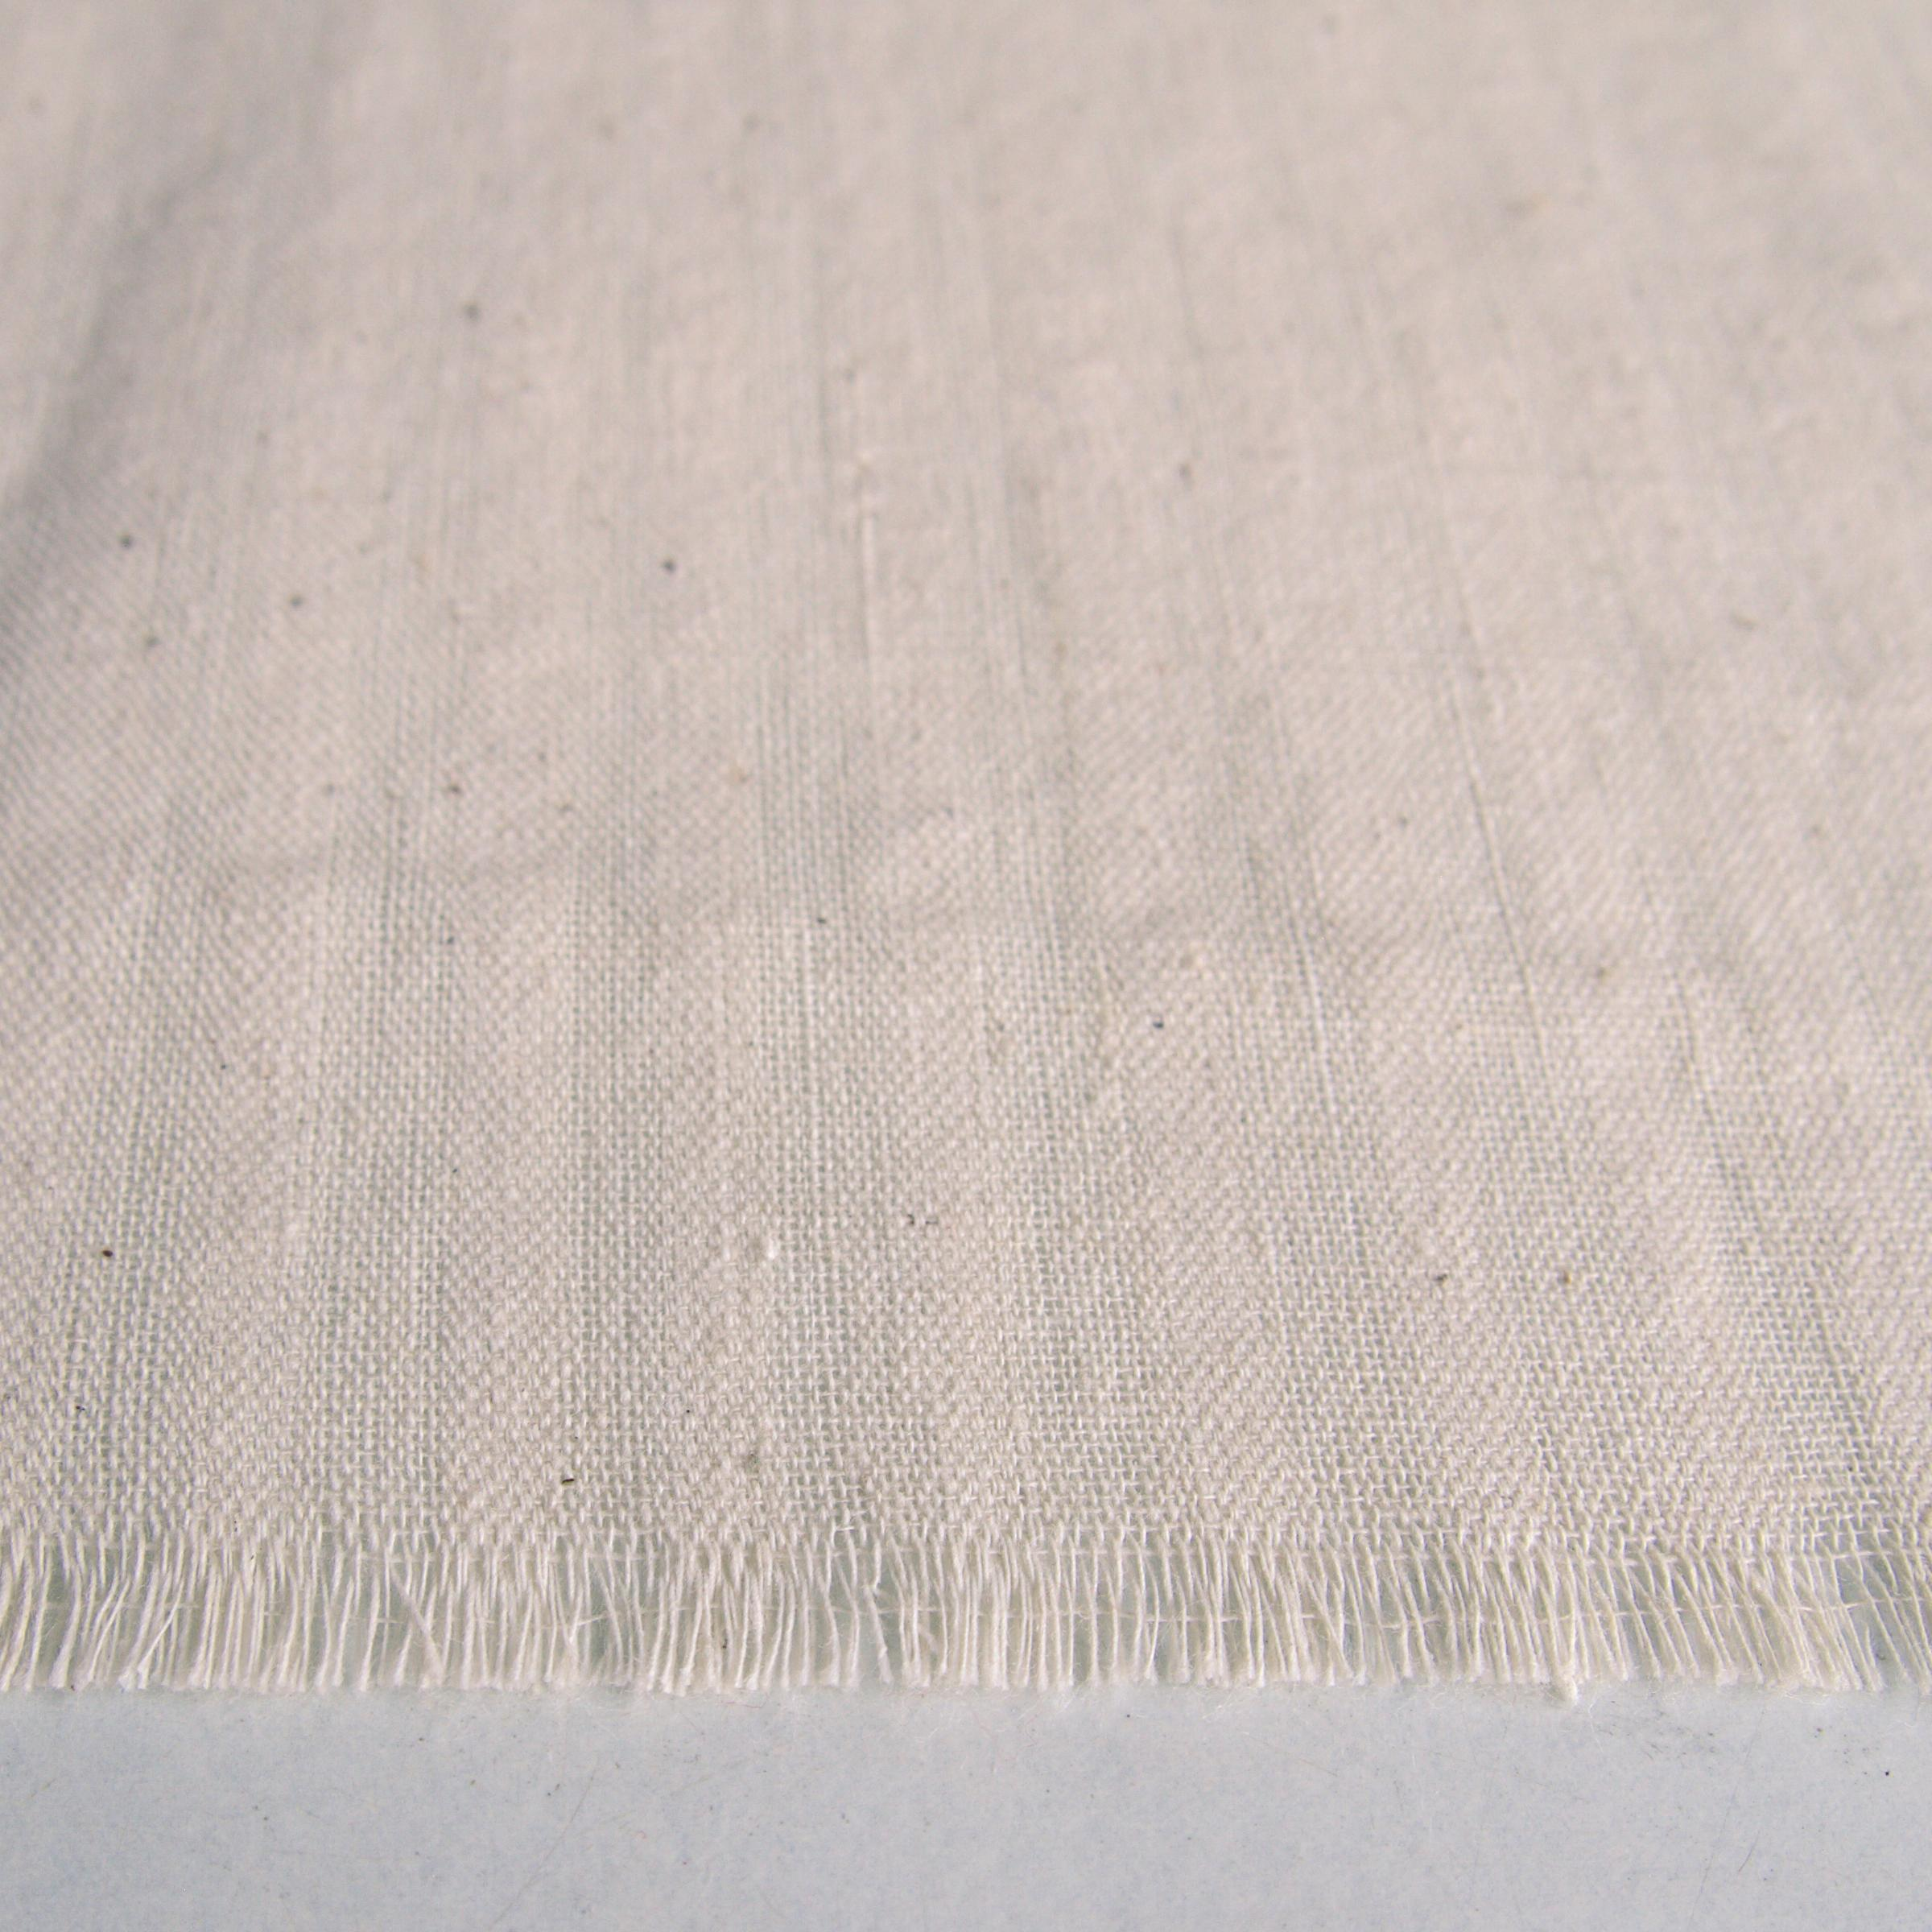 100% Handloom Woven Cotton - Dented Weave - White Dented Warp & Warp - Close Up